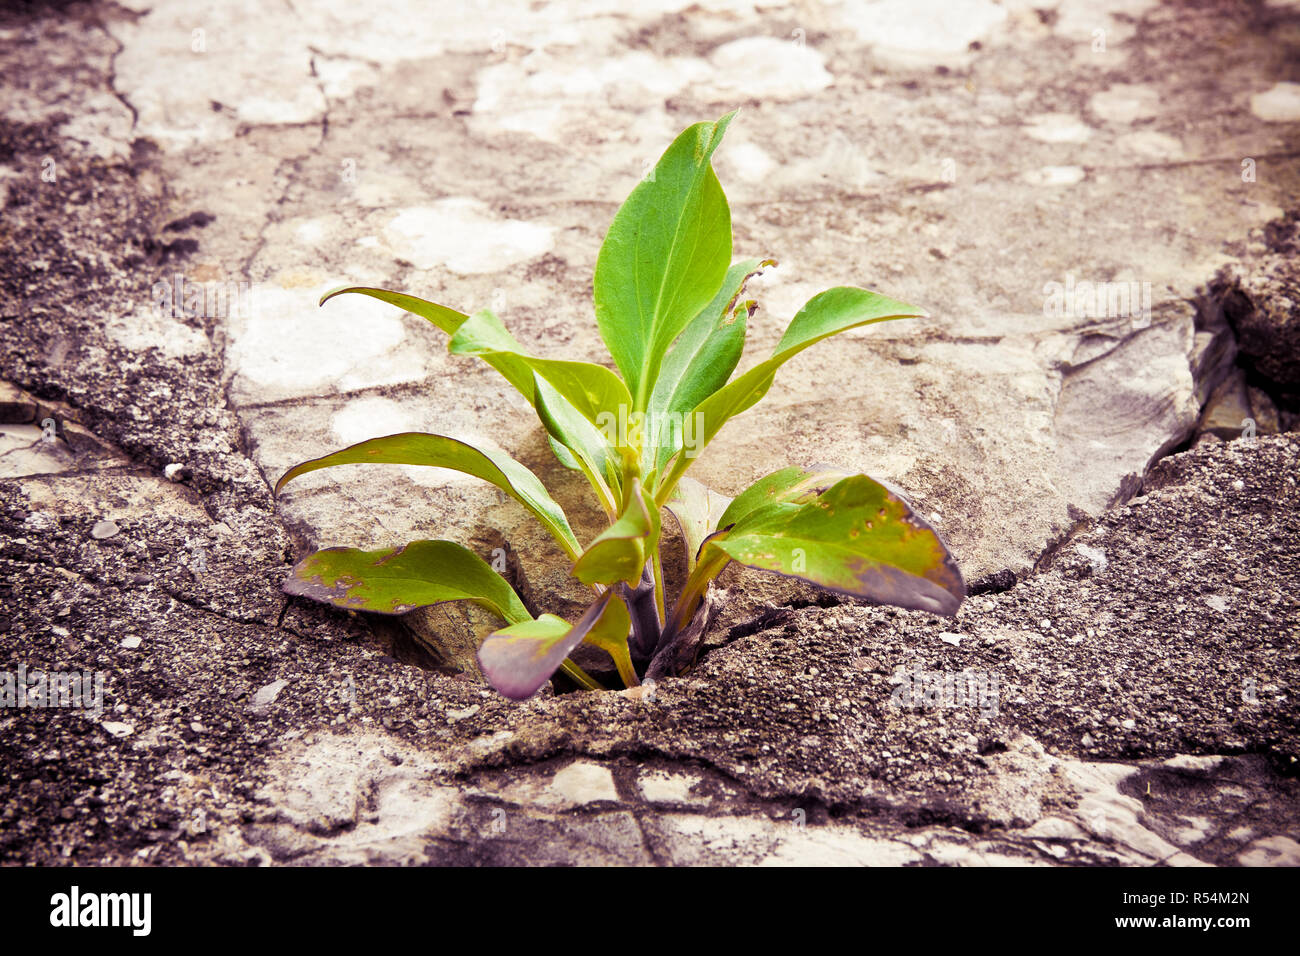 Small plant was born in an improbable place - power of life concept image - toned image - Stock Image